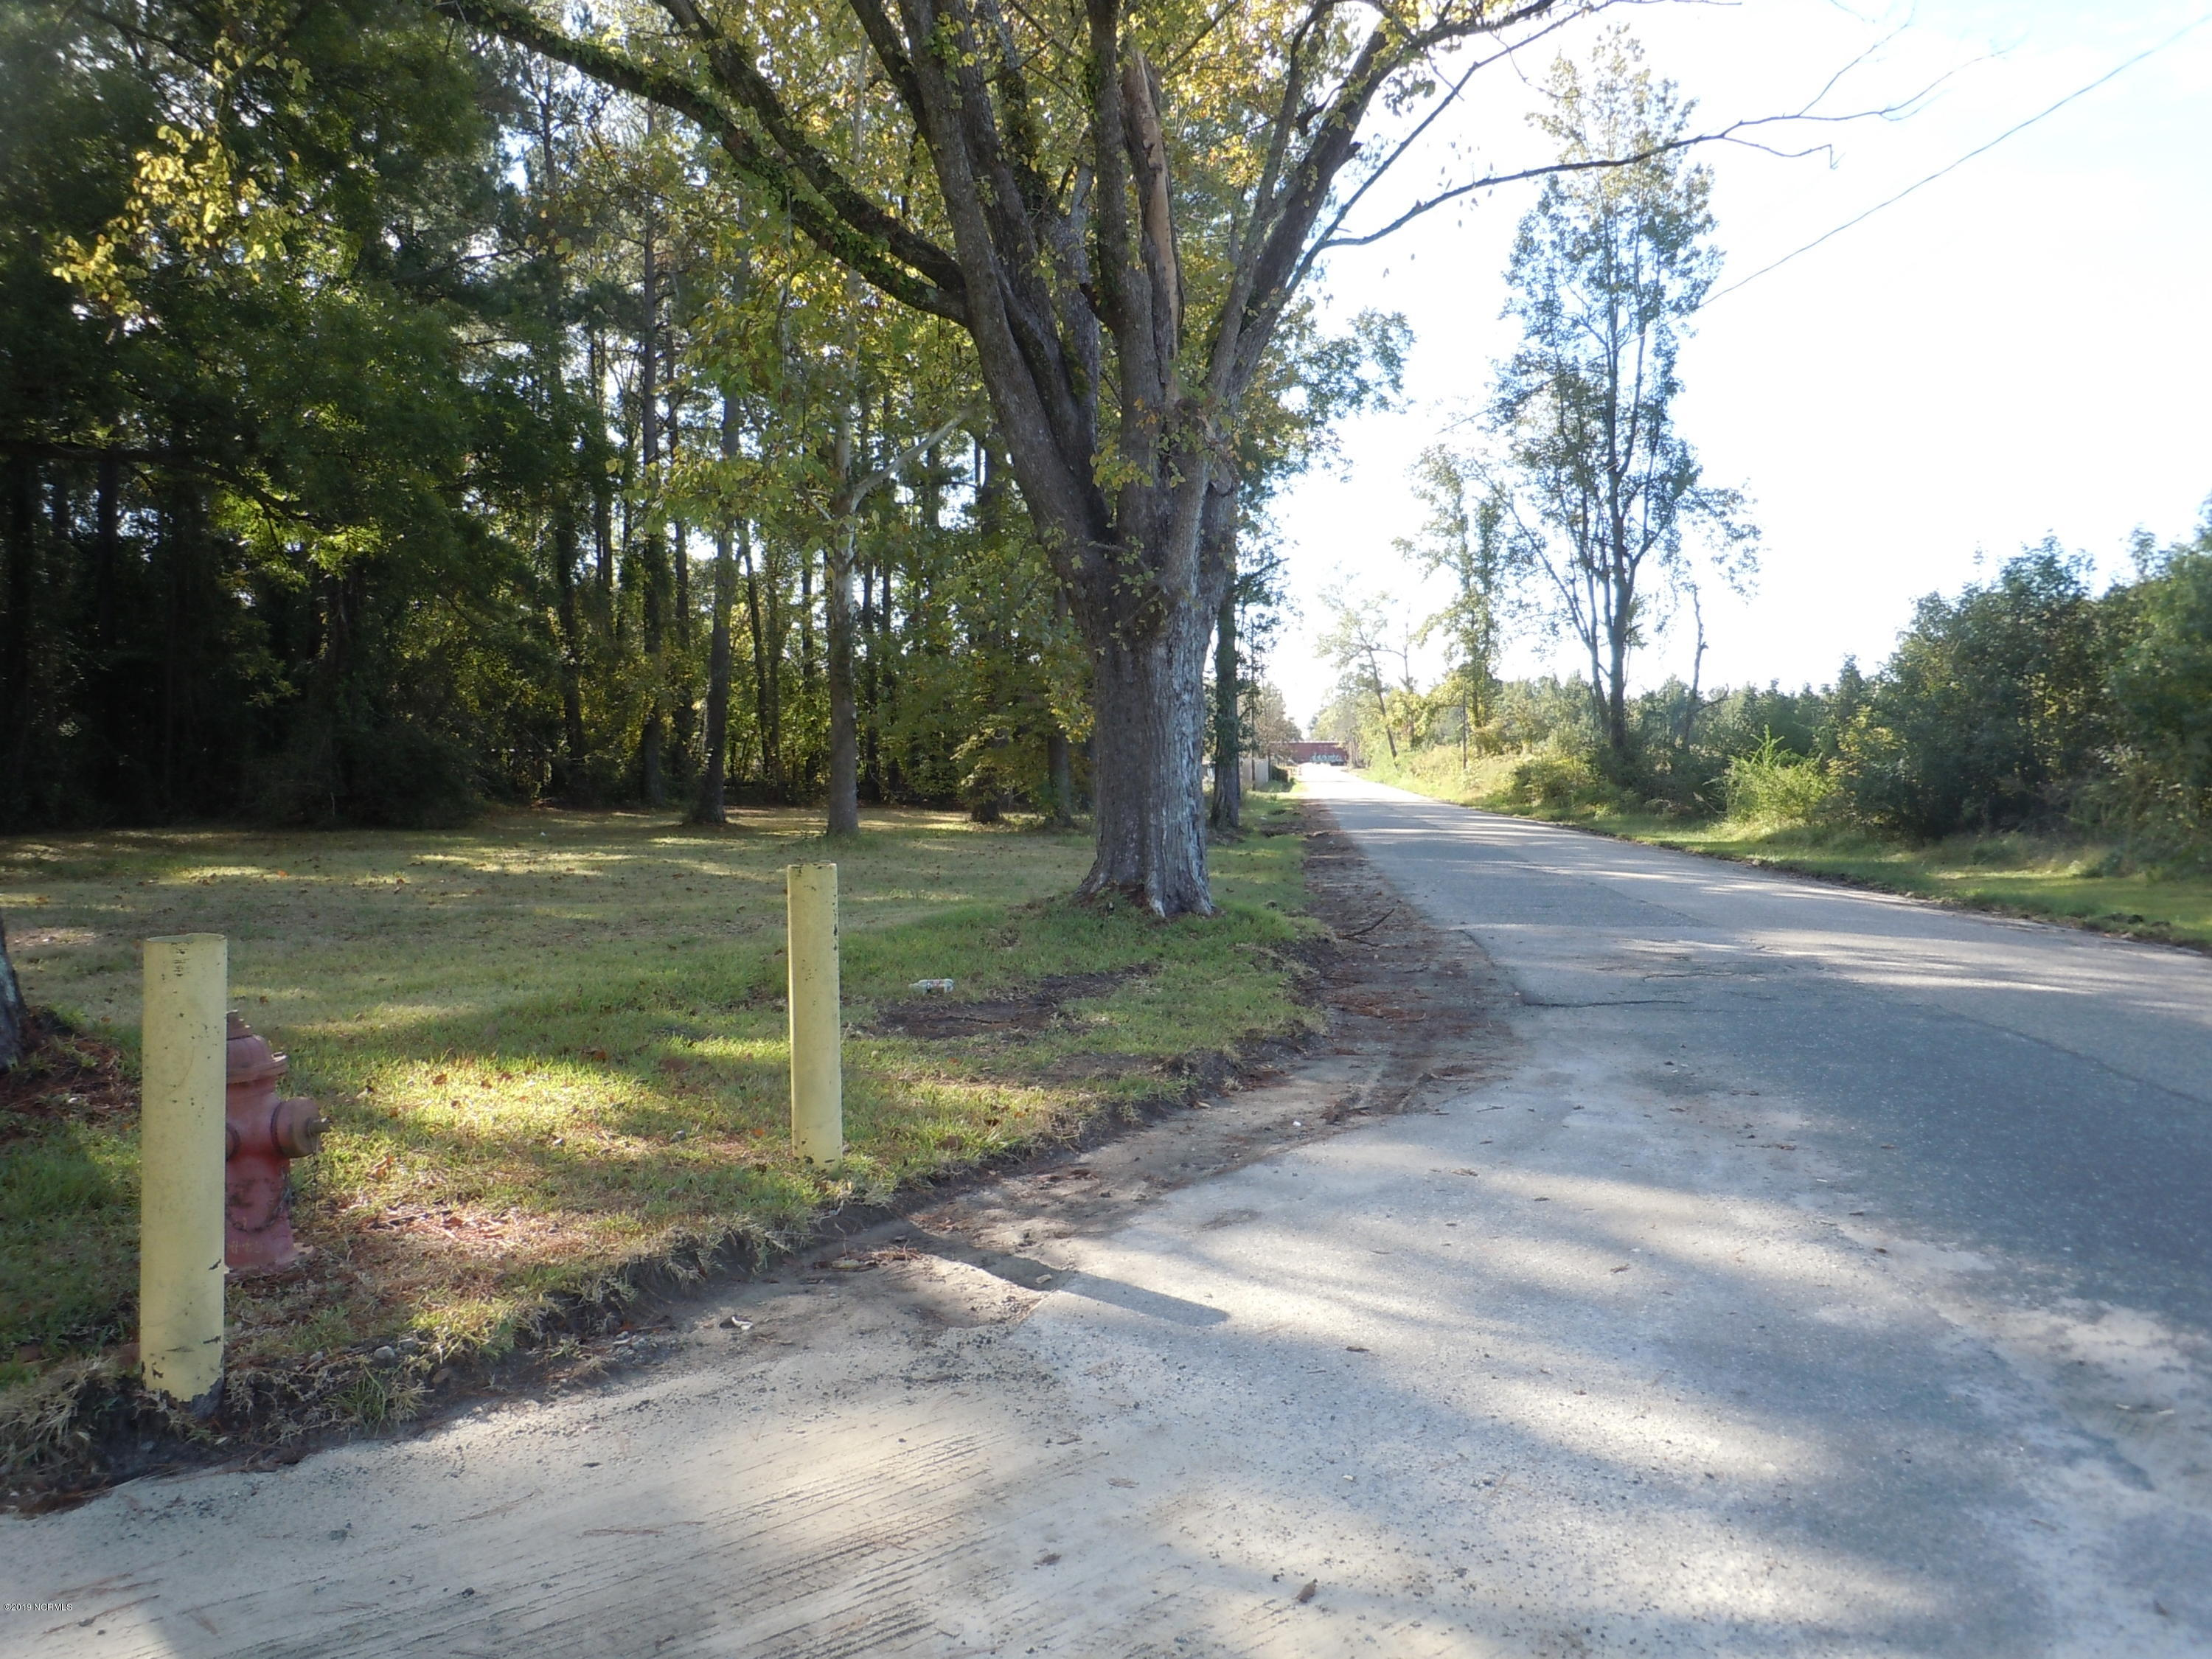 Tbd Lot 2 Wilkes, Chadbourn, North Carolina 28431, ,Residential land,For sale,Wilkes,100189551